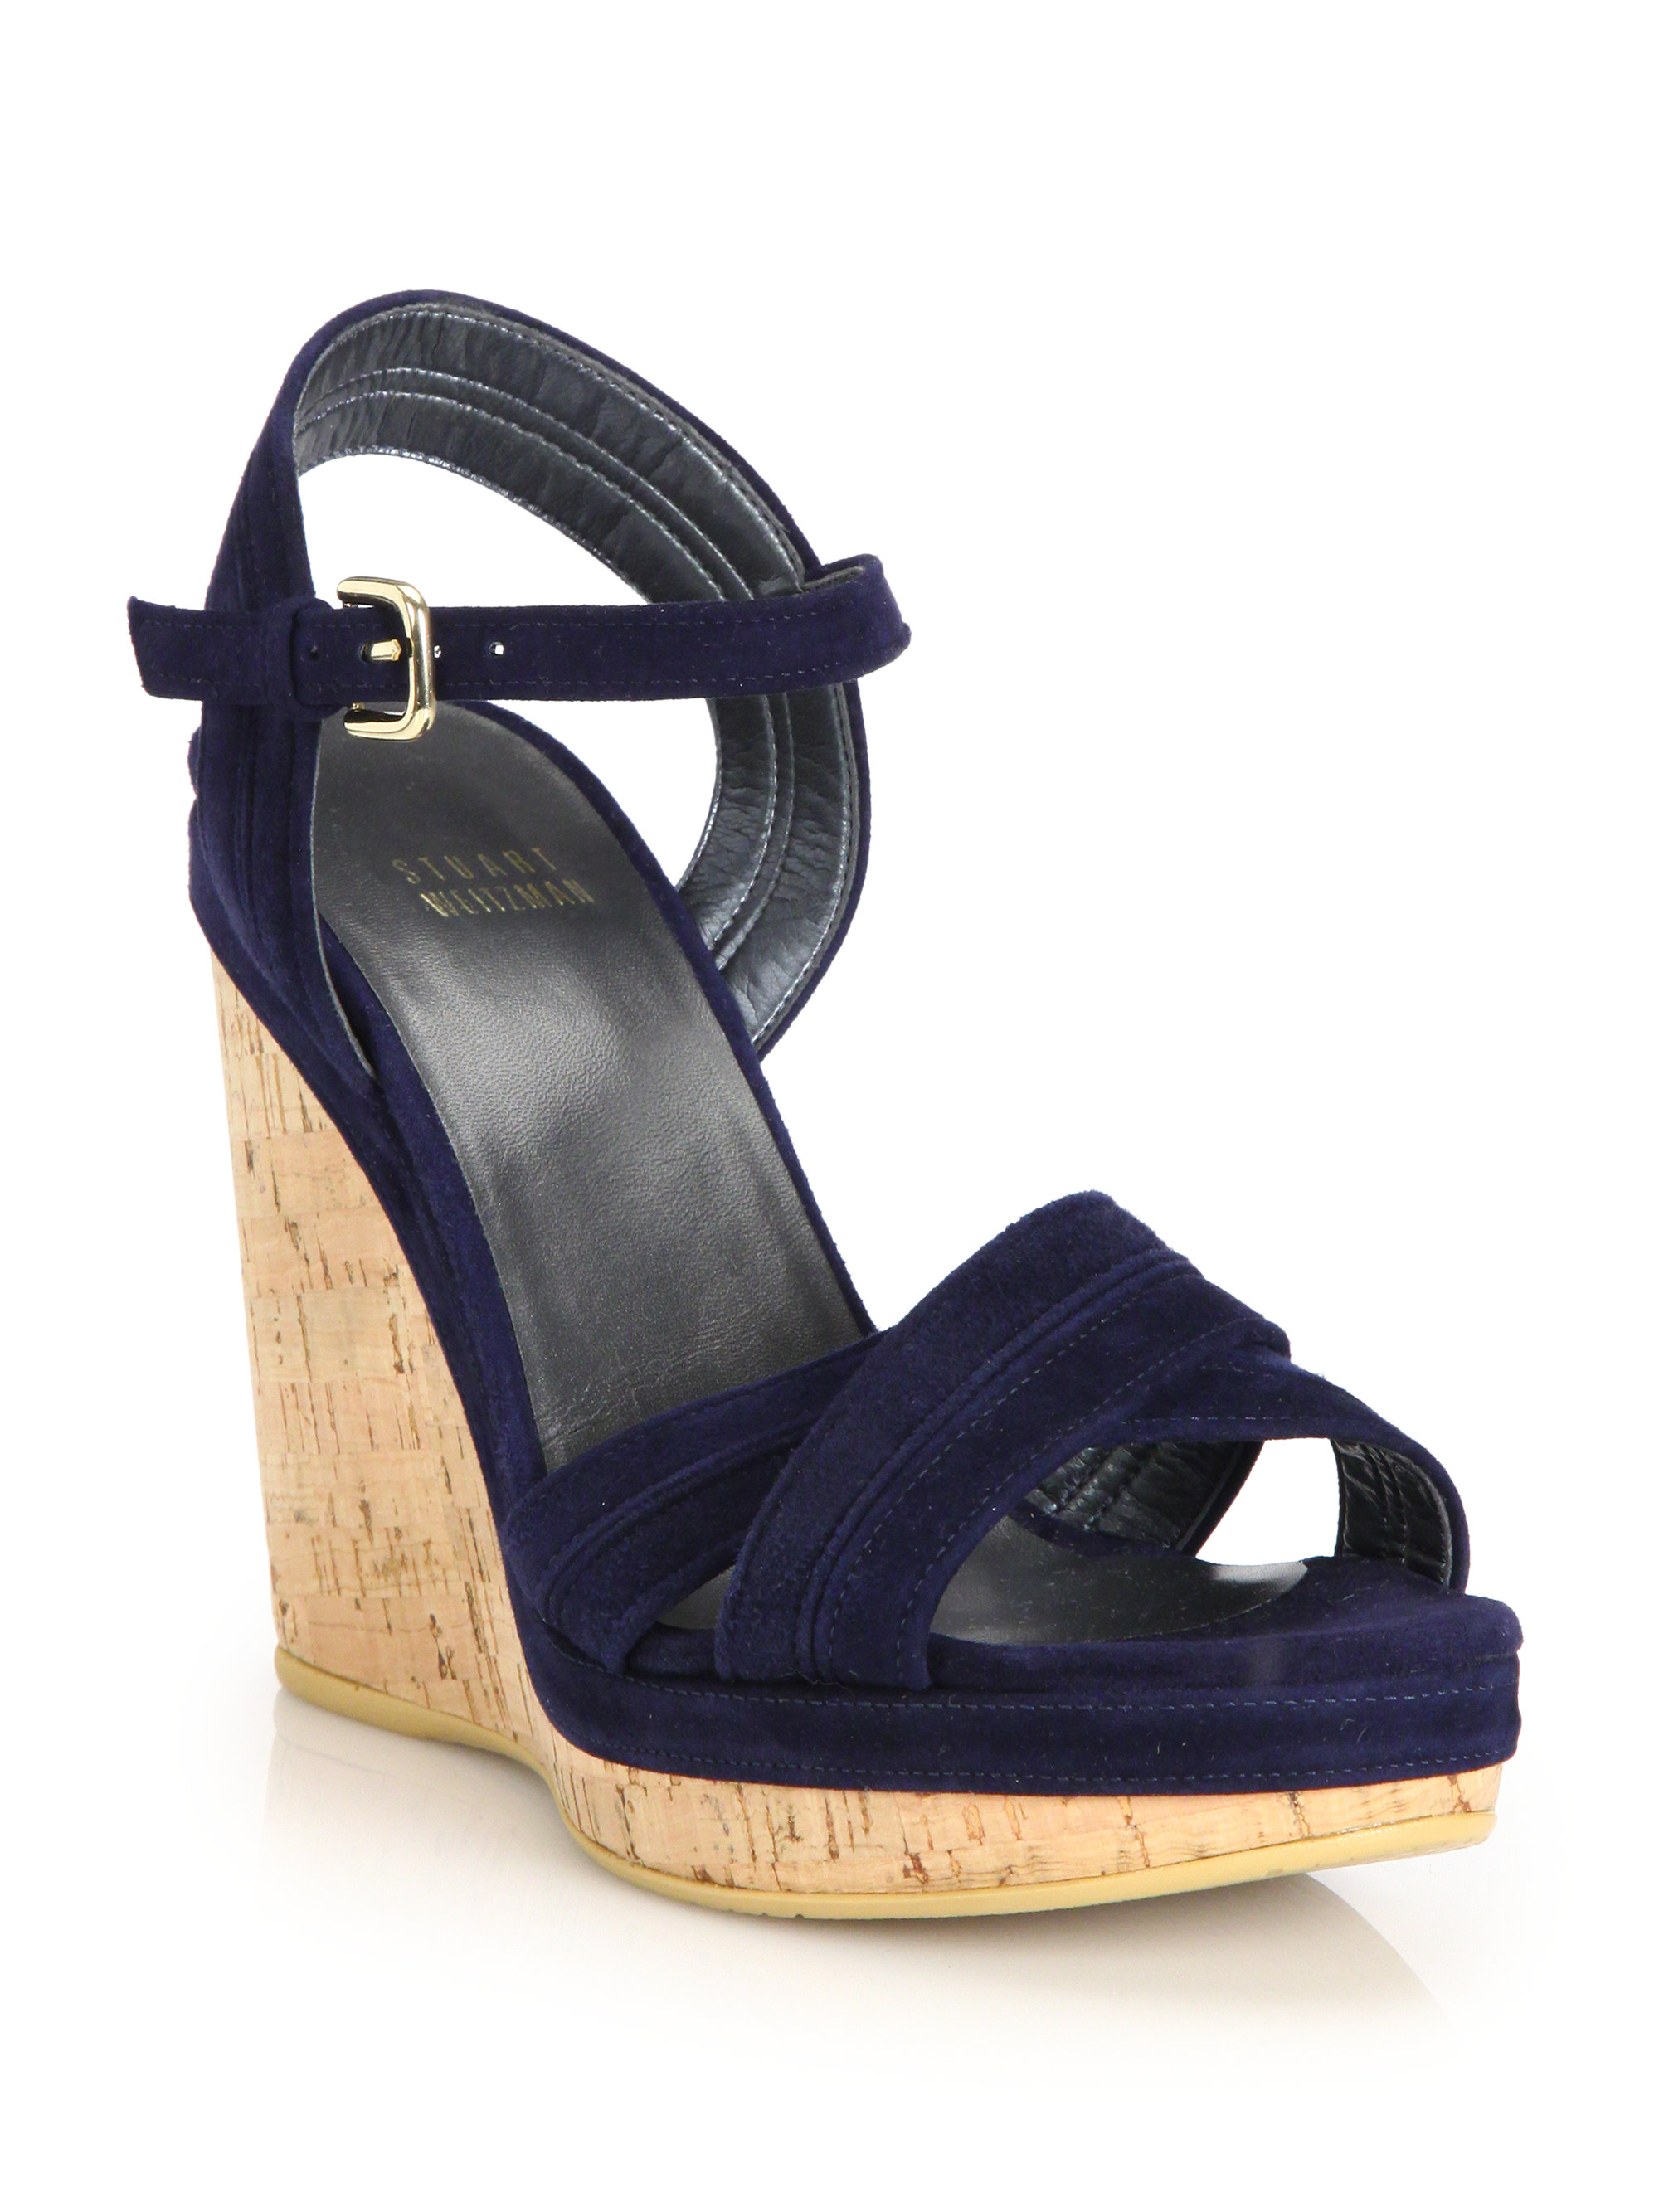 1bceef03e6902 Lyst - Stuart Weitzman Minky Suede Cork Wedge Sandals in Blue